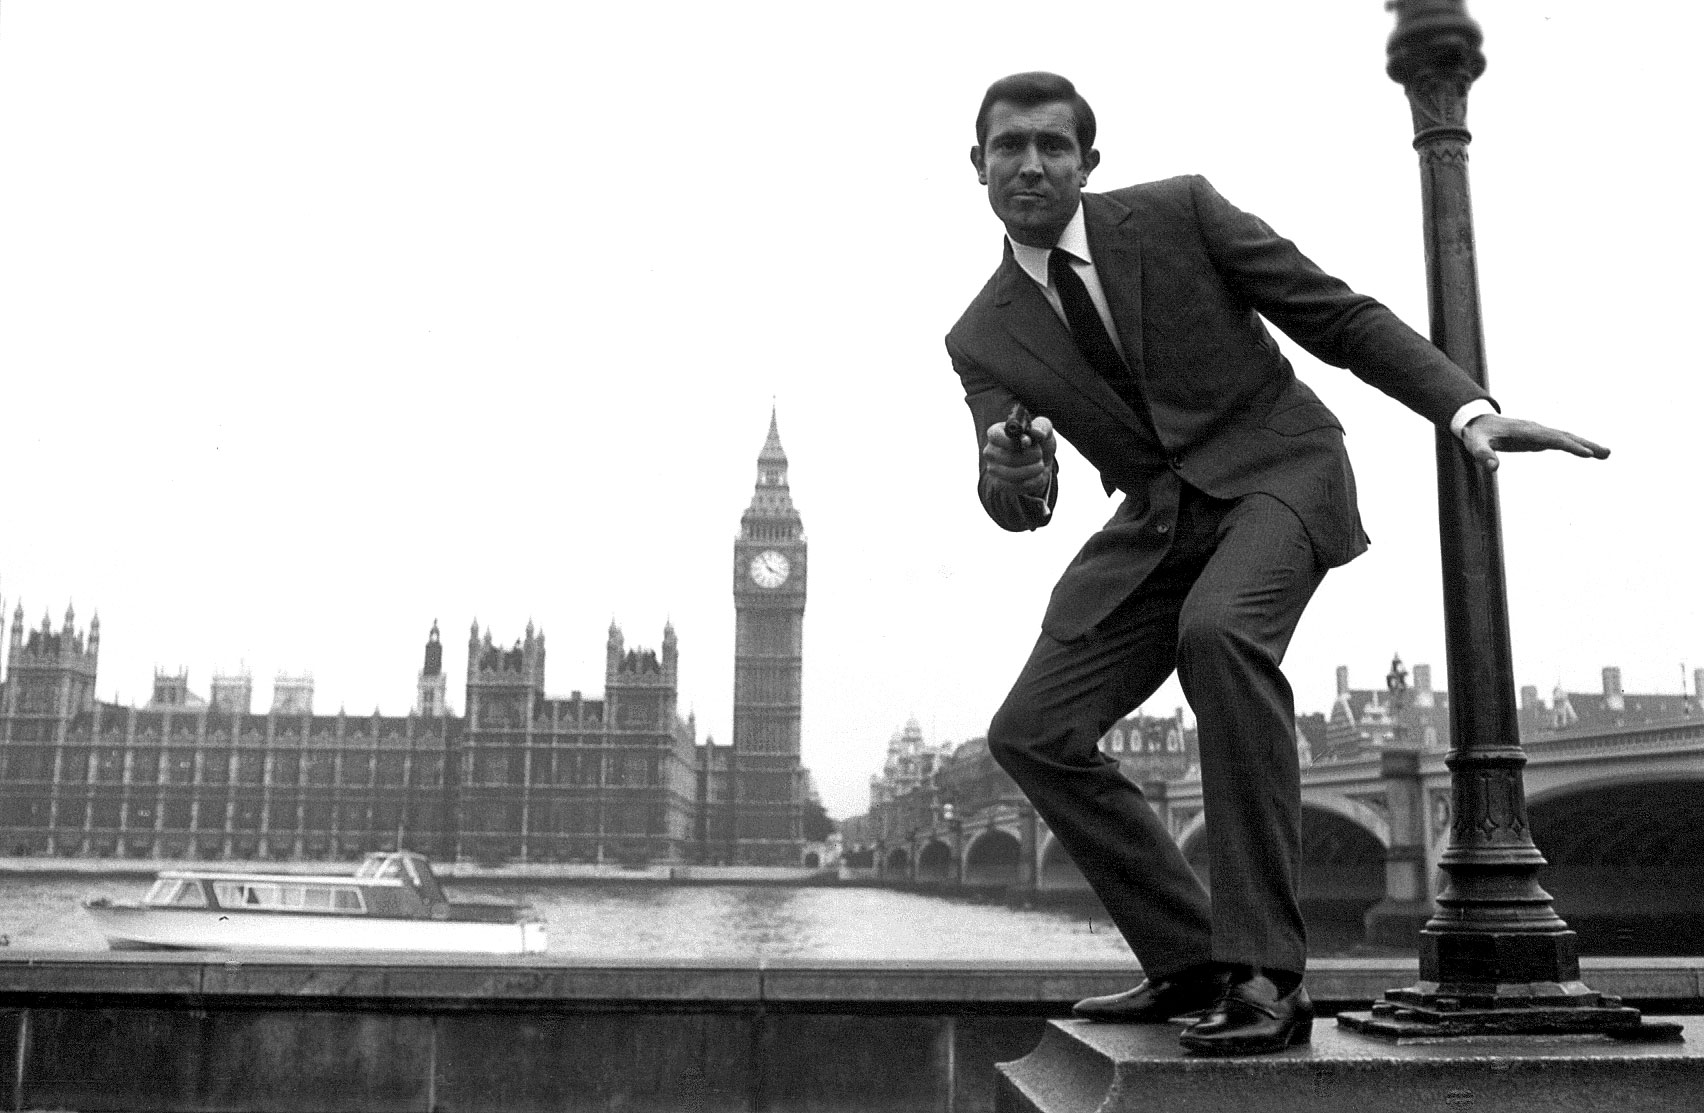 George Lazenby as James Bond in Becoming Bond (2017)